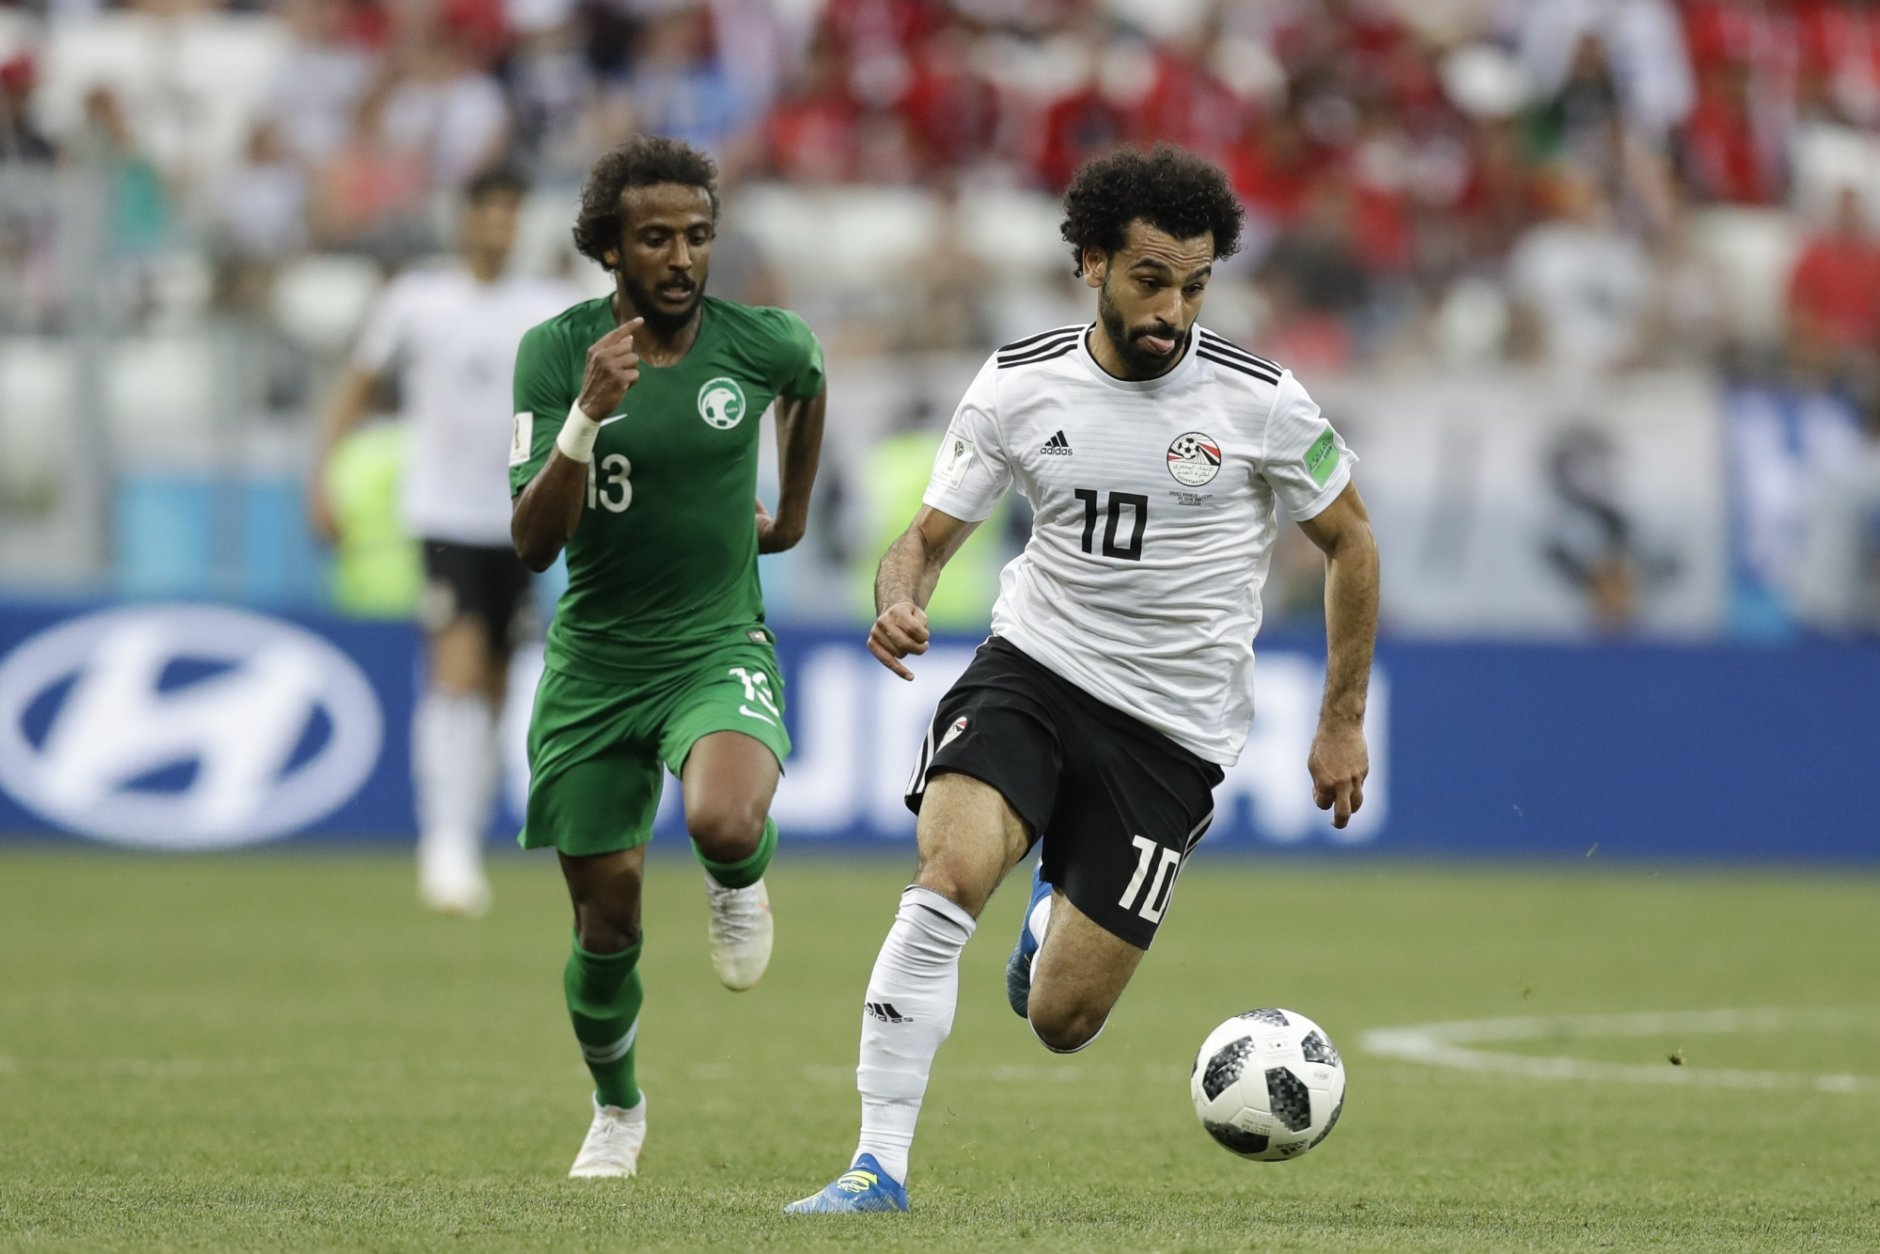 Egypt's Mohamed Salah, right challenge for the ball with Saudi Arabia's Yasir Alshahrani during the group A match between Saudi Arabia and Egypt at the 2018 soccer World Cup at the Volgograd Arena in Volgograd, Russia, Monday, June 25, 2018. (AP Photo/Andrew Medichini)